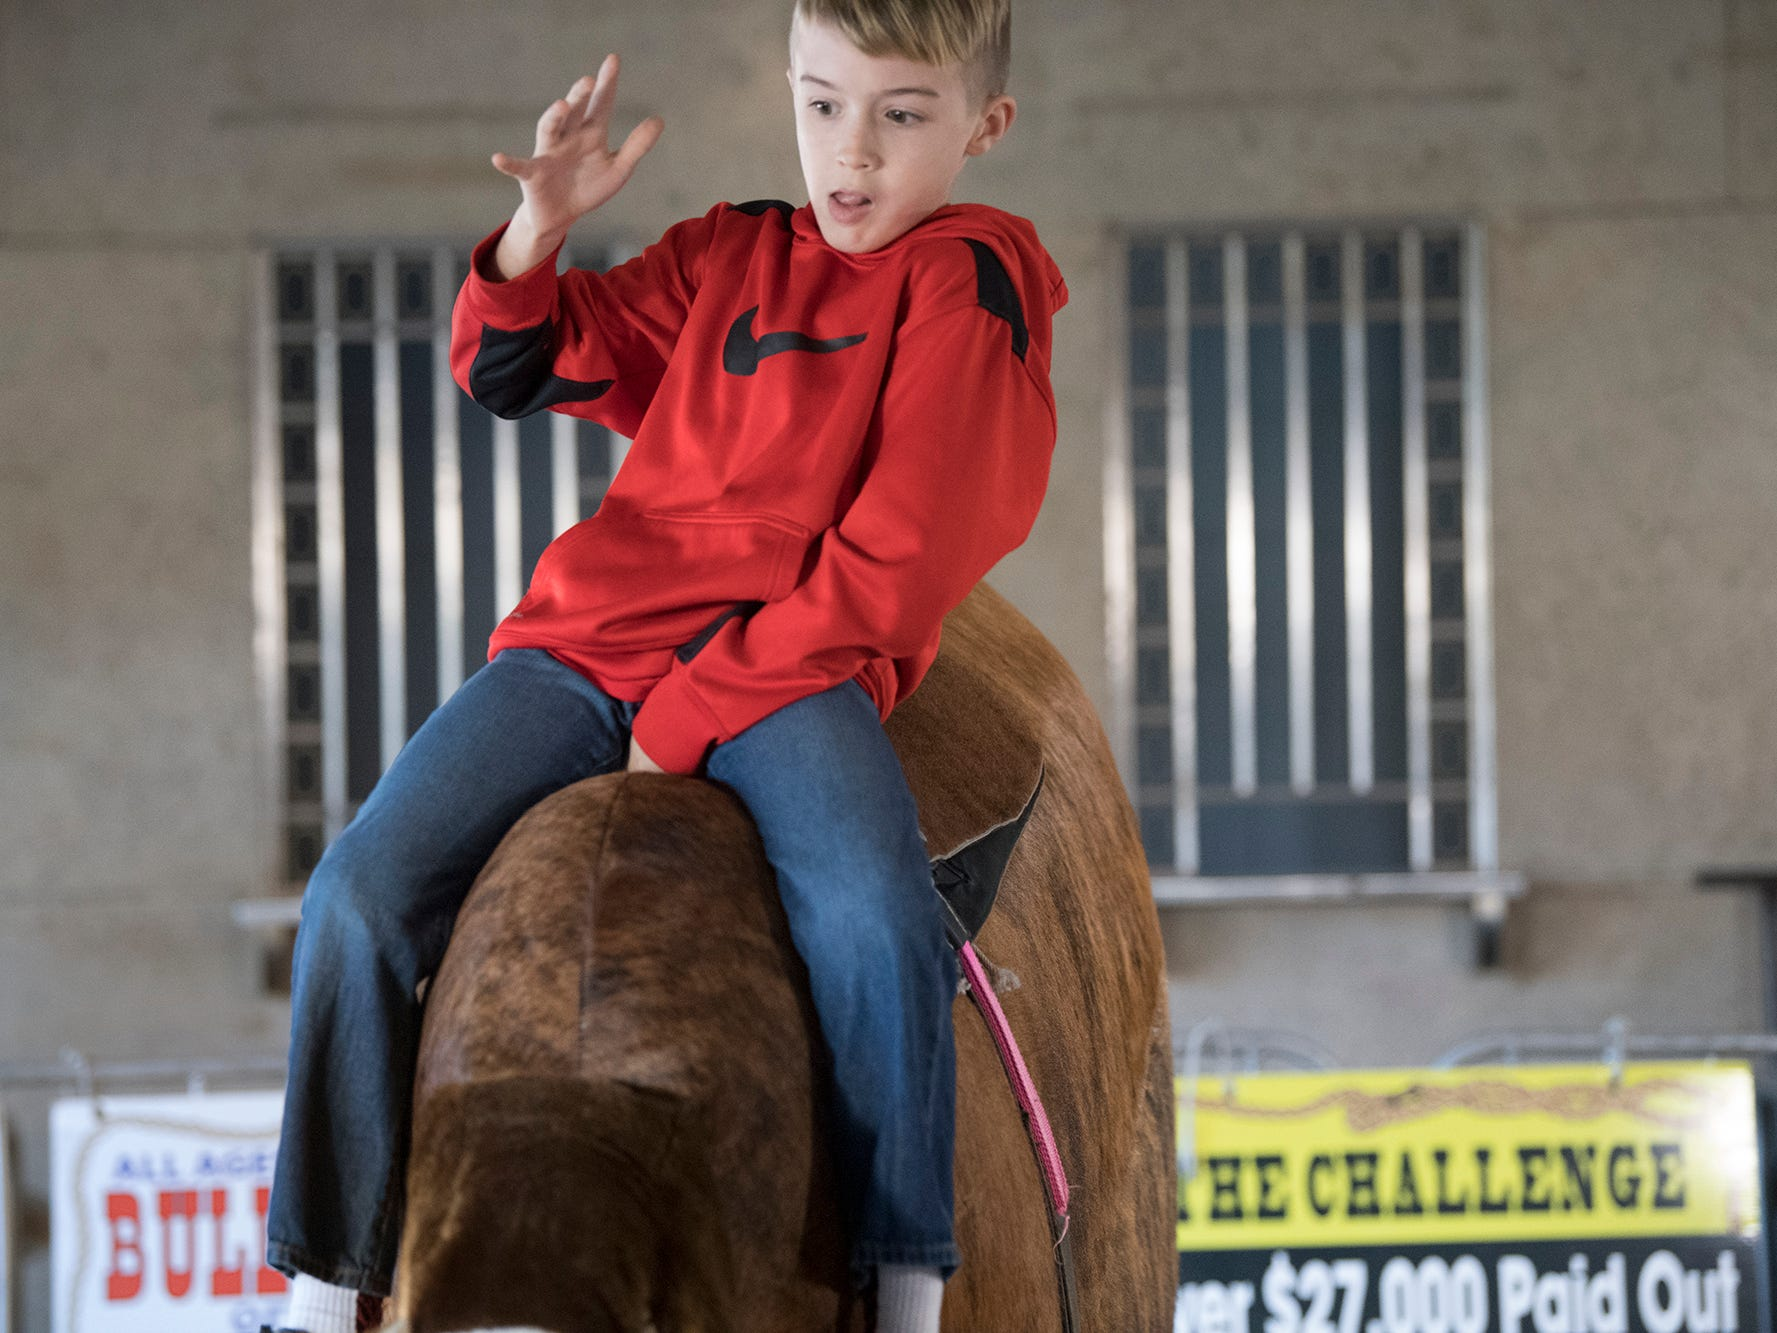 Gage Feldman, age 10 of Chambersburg, rides a mechanical bull during The 103rd Pennsylvania Farm Show in Harrisburg Sunday January 6, 2019.